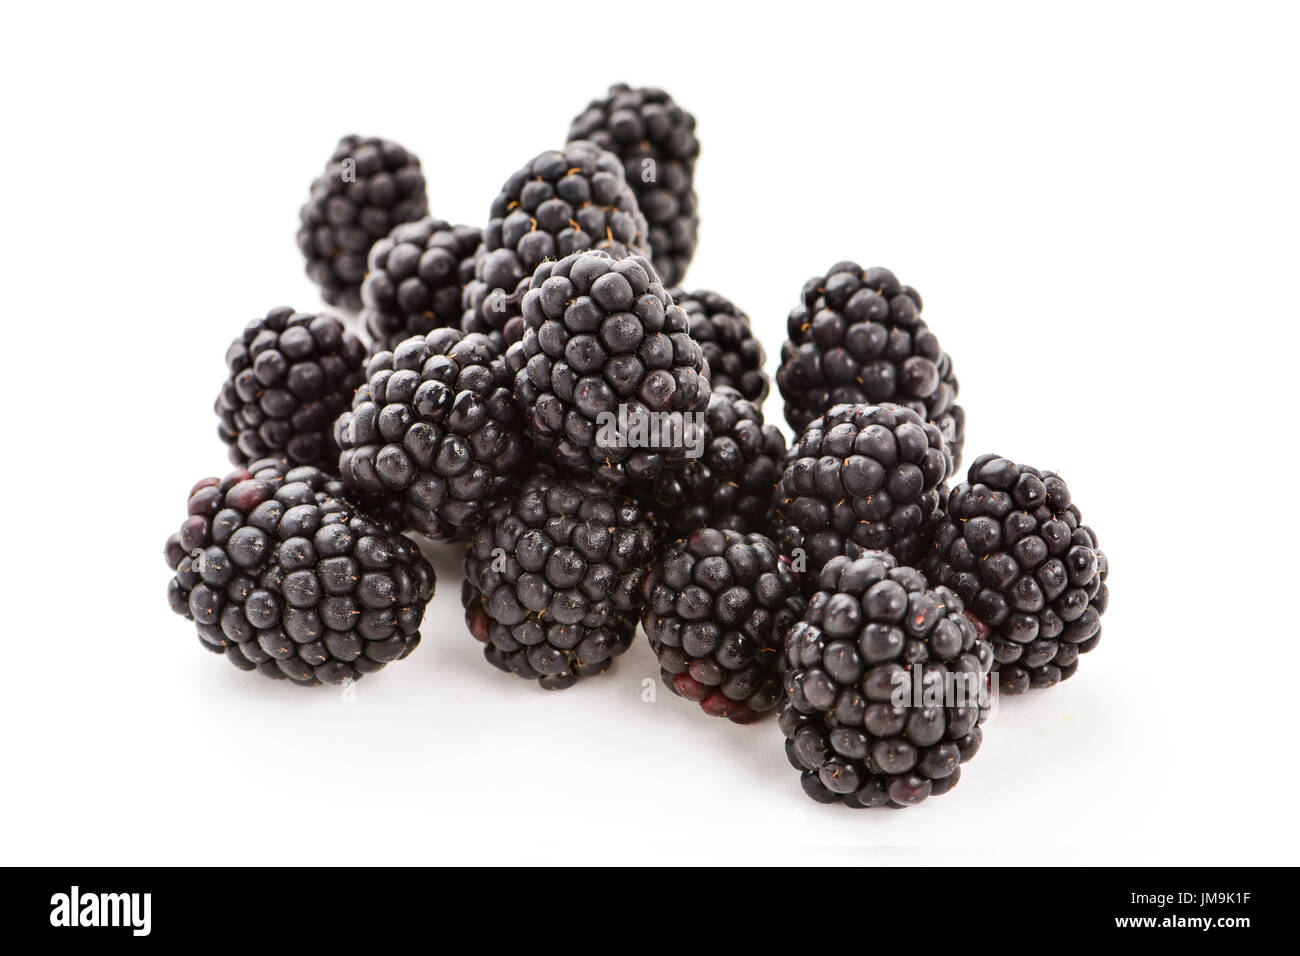 closeup of a pile of appetizing ripe blackberries on a white background - Stock Image